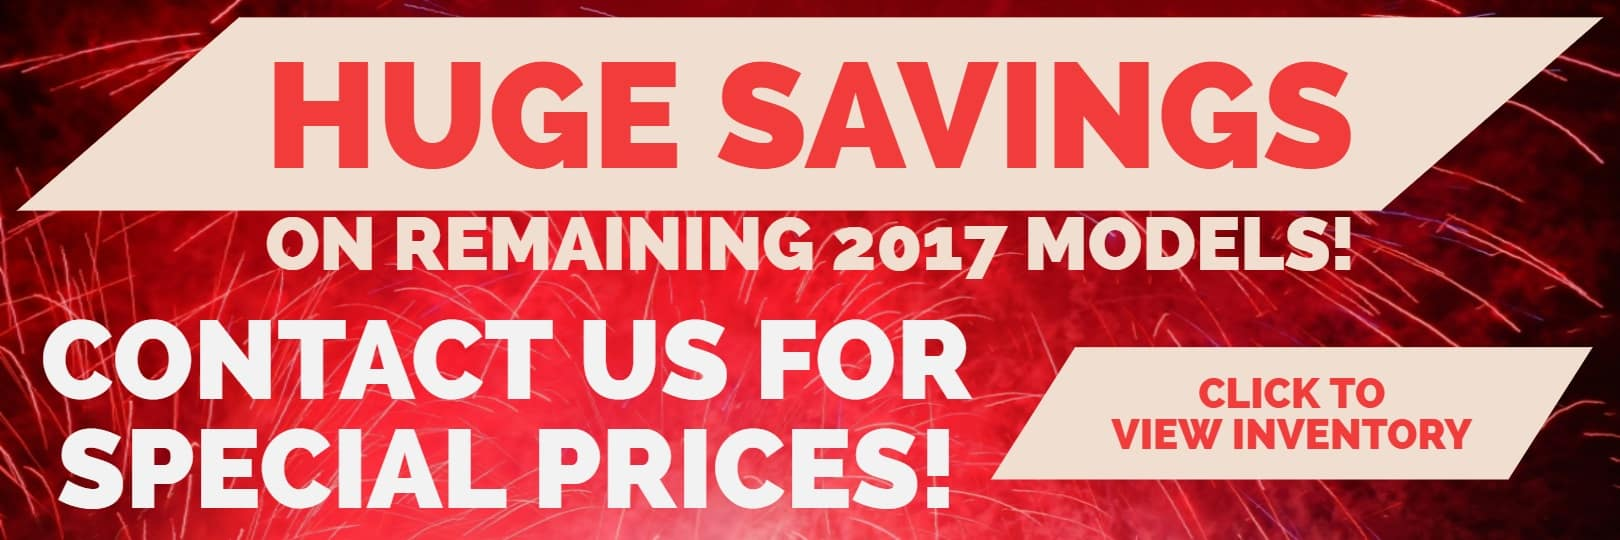 HUGE SAVINGS ON 2017 MODELS AT CAIN TOYOTA NORTH CANTON OHIO!